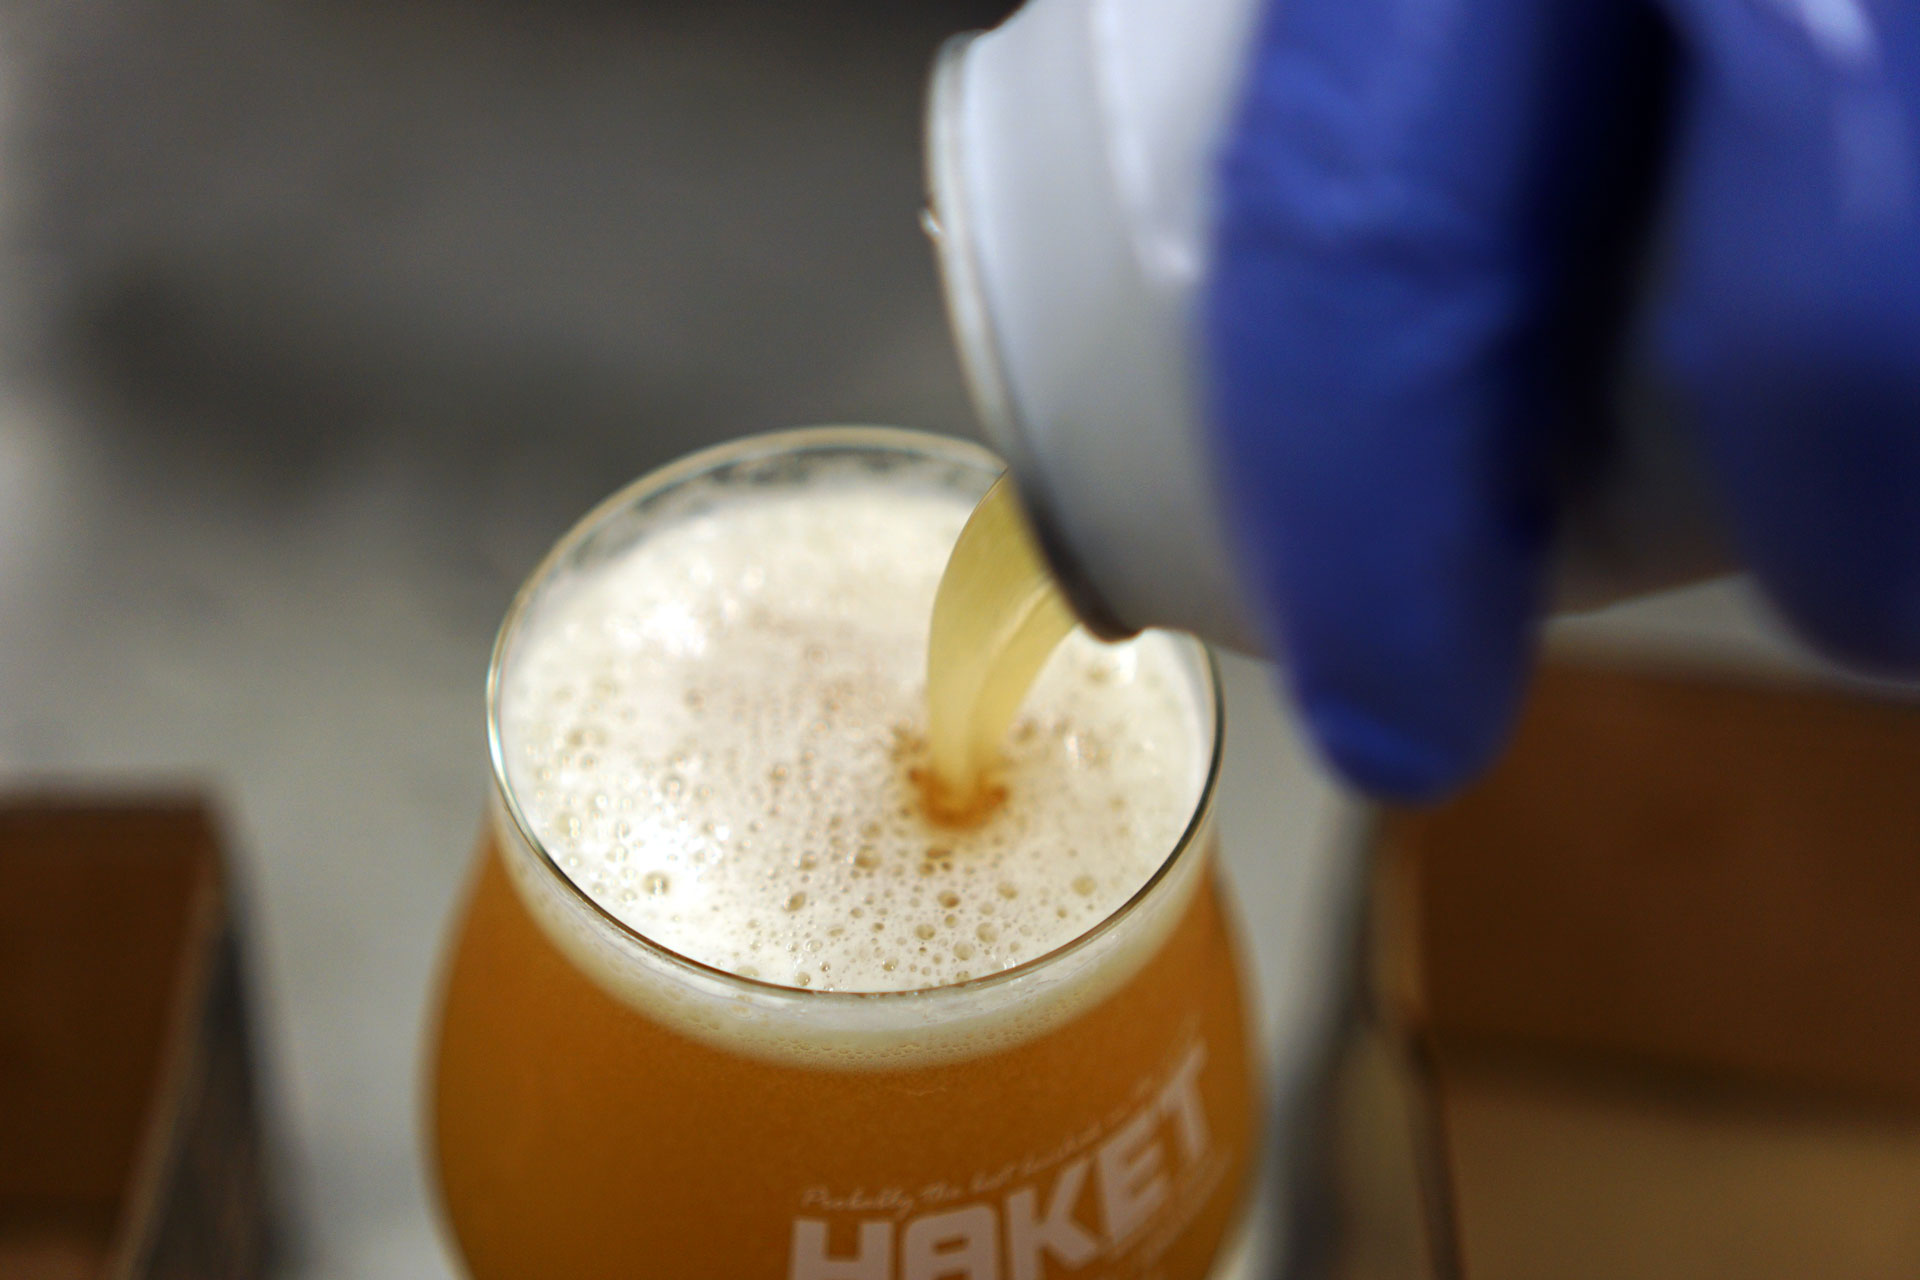 Pouring a can of beer for a tasting in the Beerbliotek Craft Brewery in Sweden.